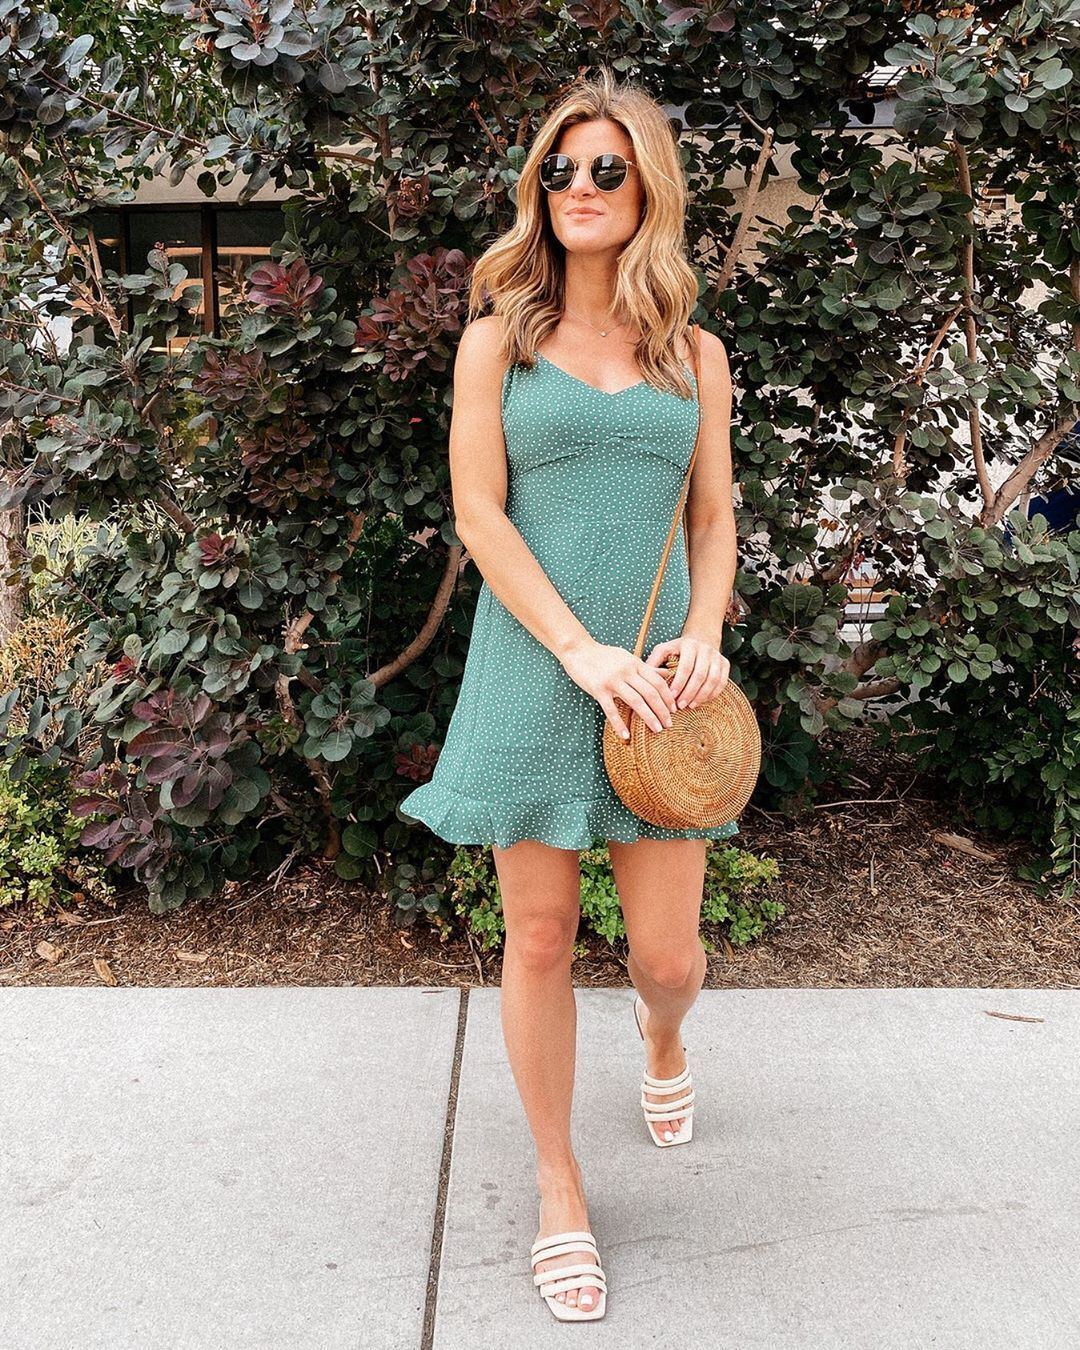 Brighton Butler On Instagram Mini Dresses Summer Edgy Fashion Comfy Outfits [ 1350 x 1080 Pixel ]